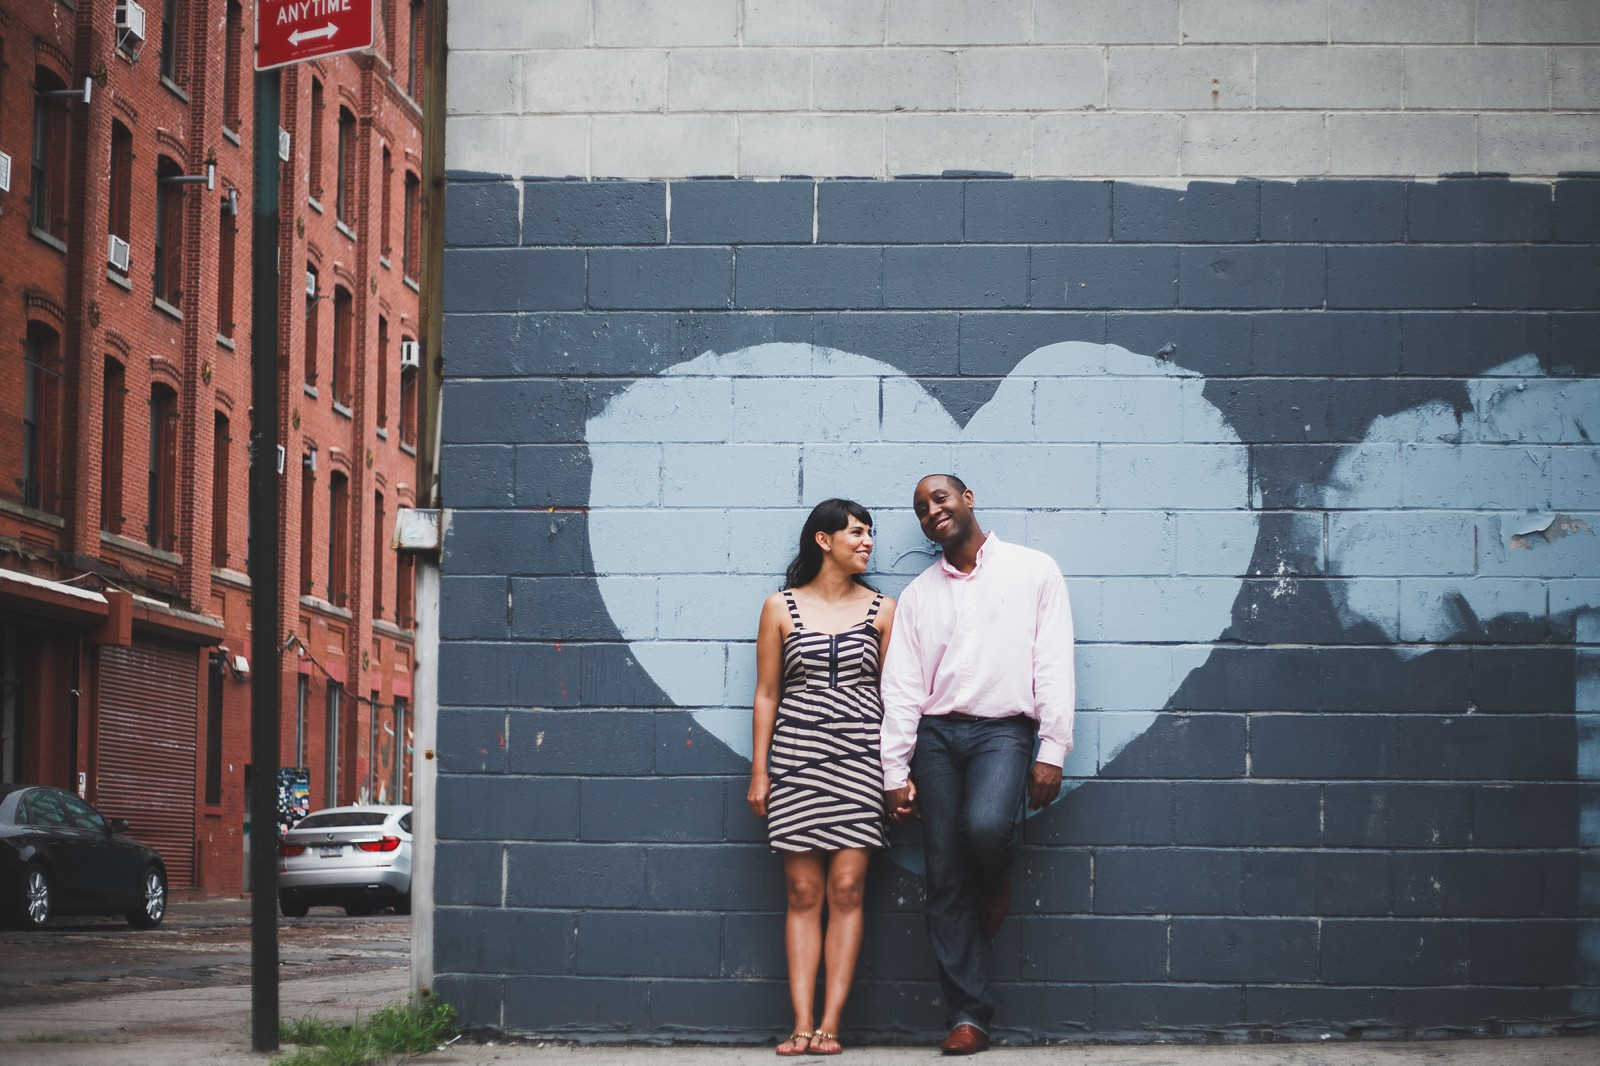 photographer who shoots natural engagement photos, realistic wedding and portrait wedding photographer, brooklyn photographer, williamsburg wedding photographer, heart photo